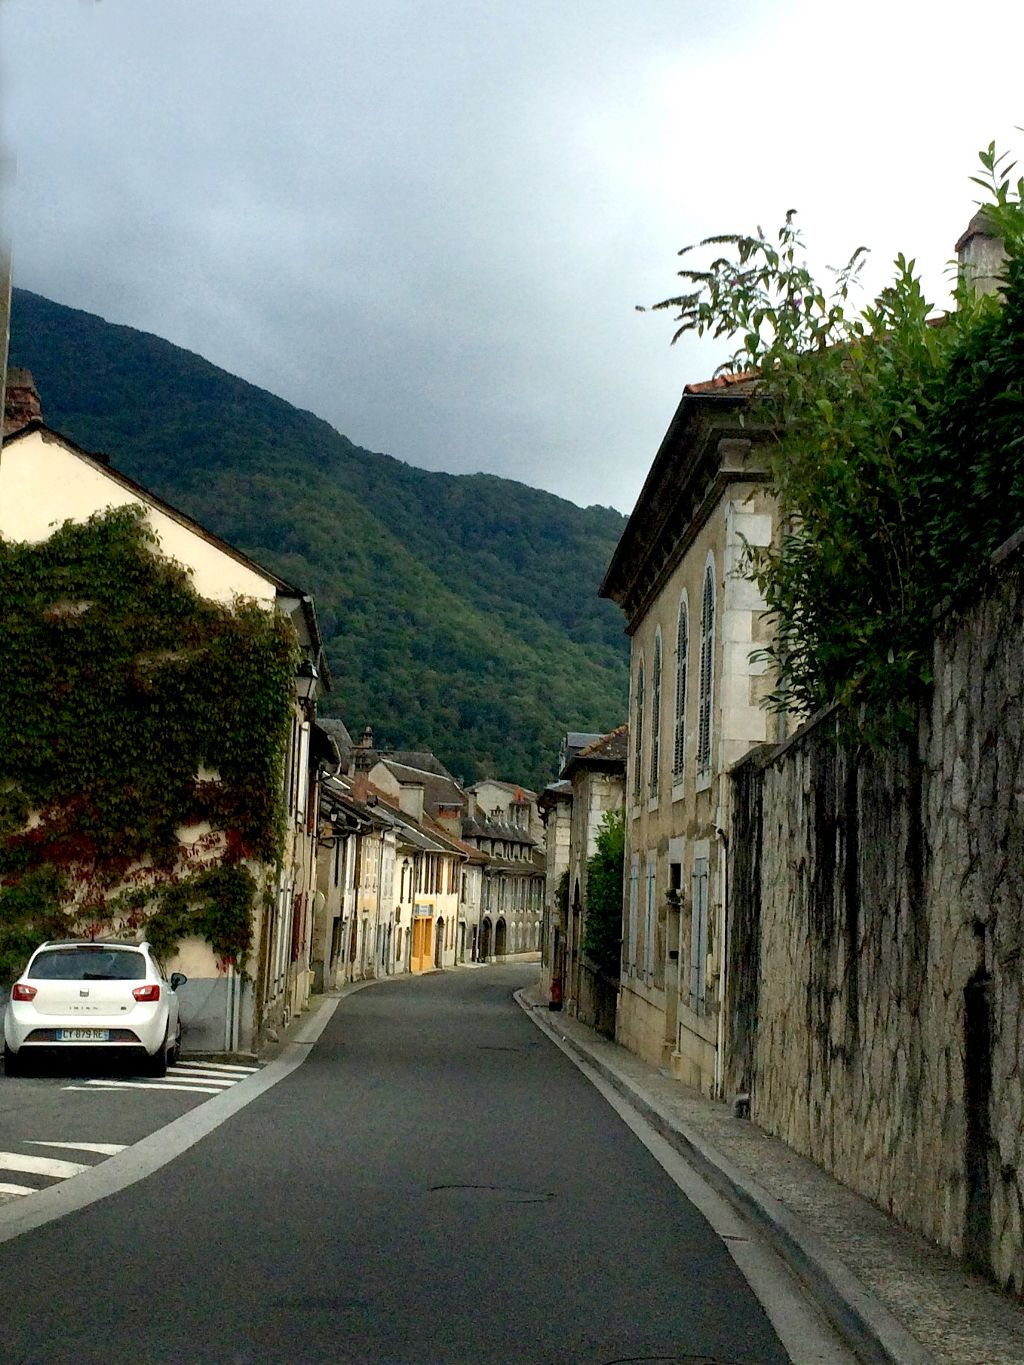 #photography #nature #road #mountains #midipyrenees #france